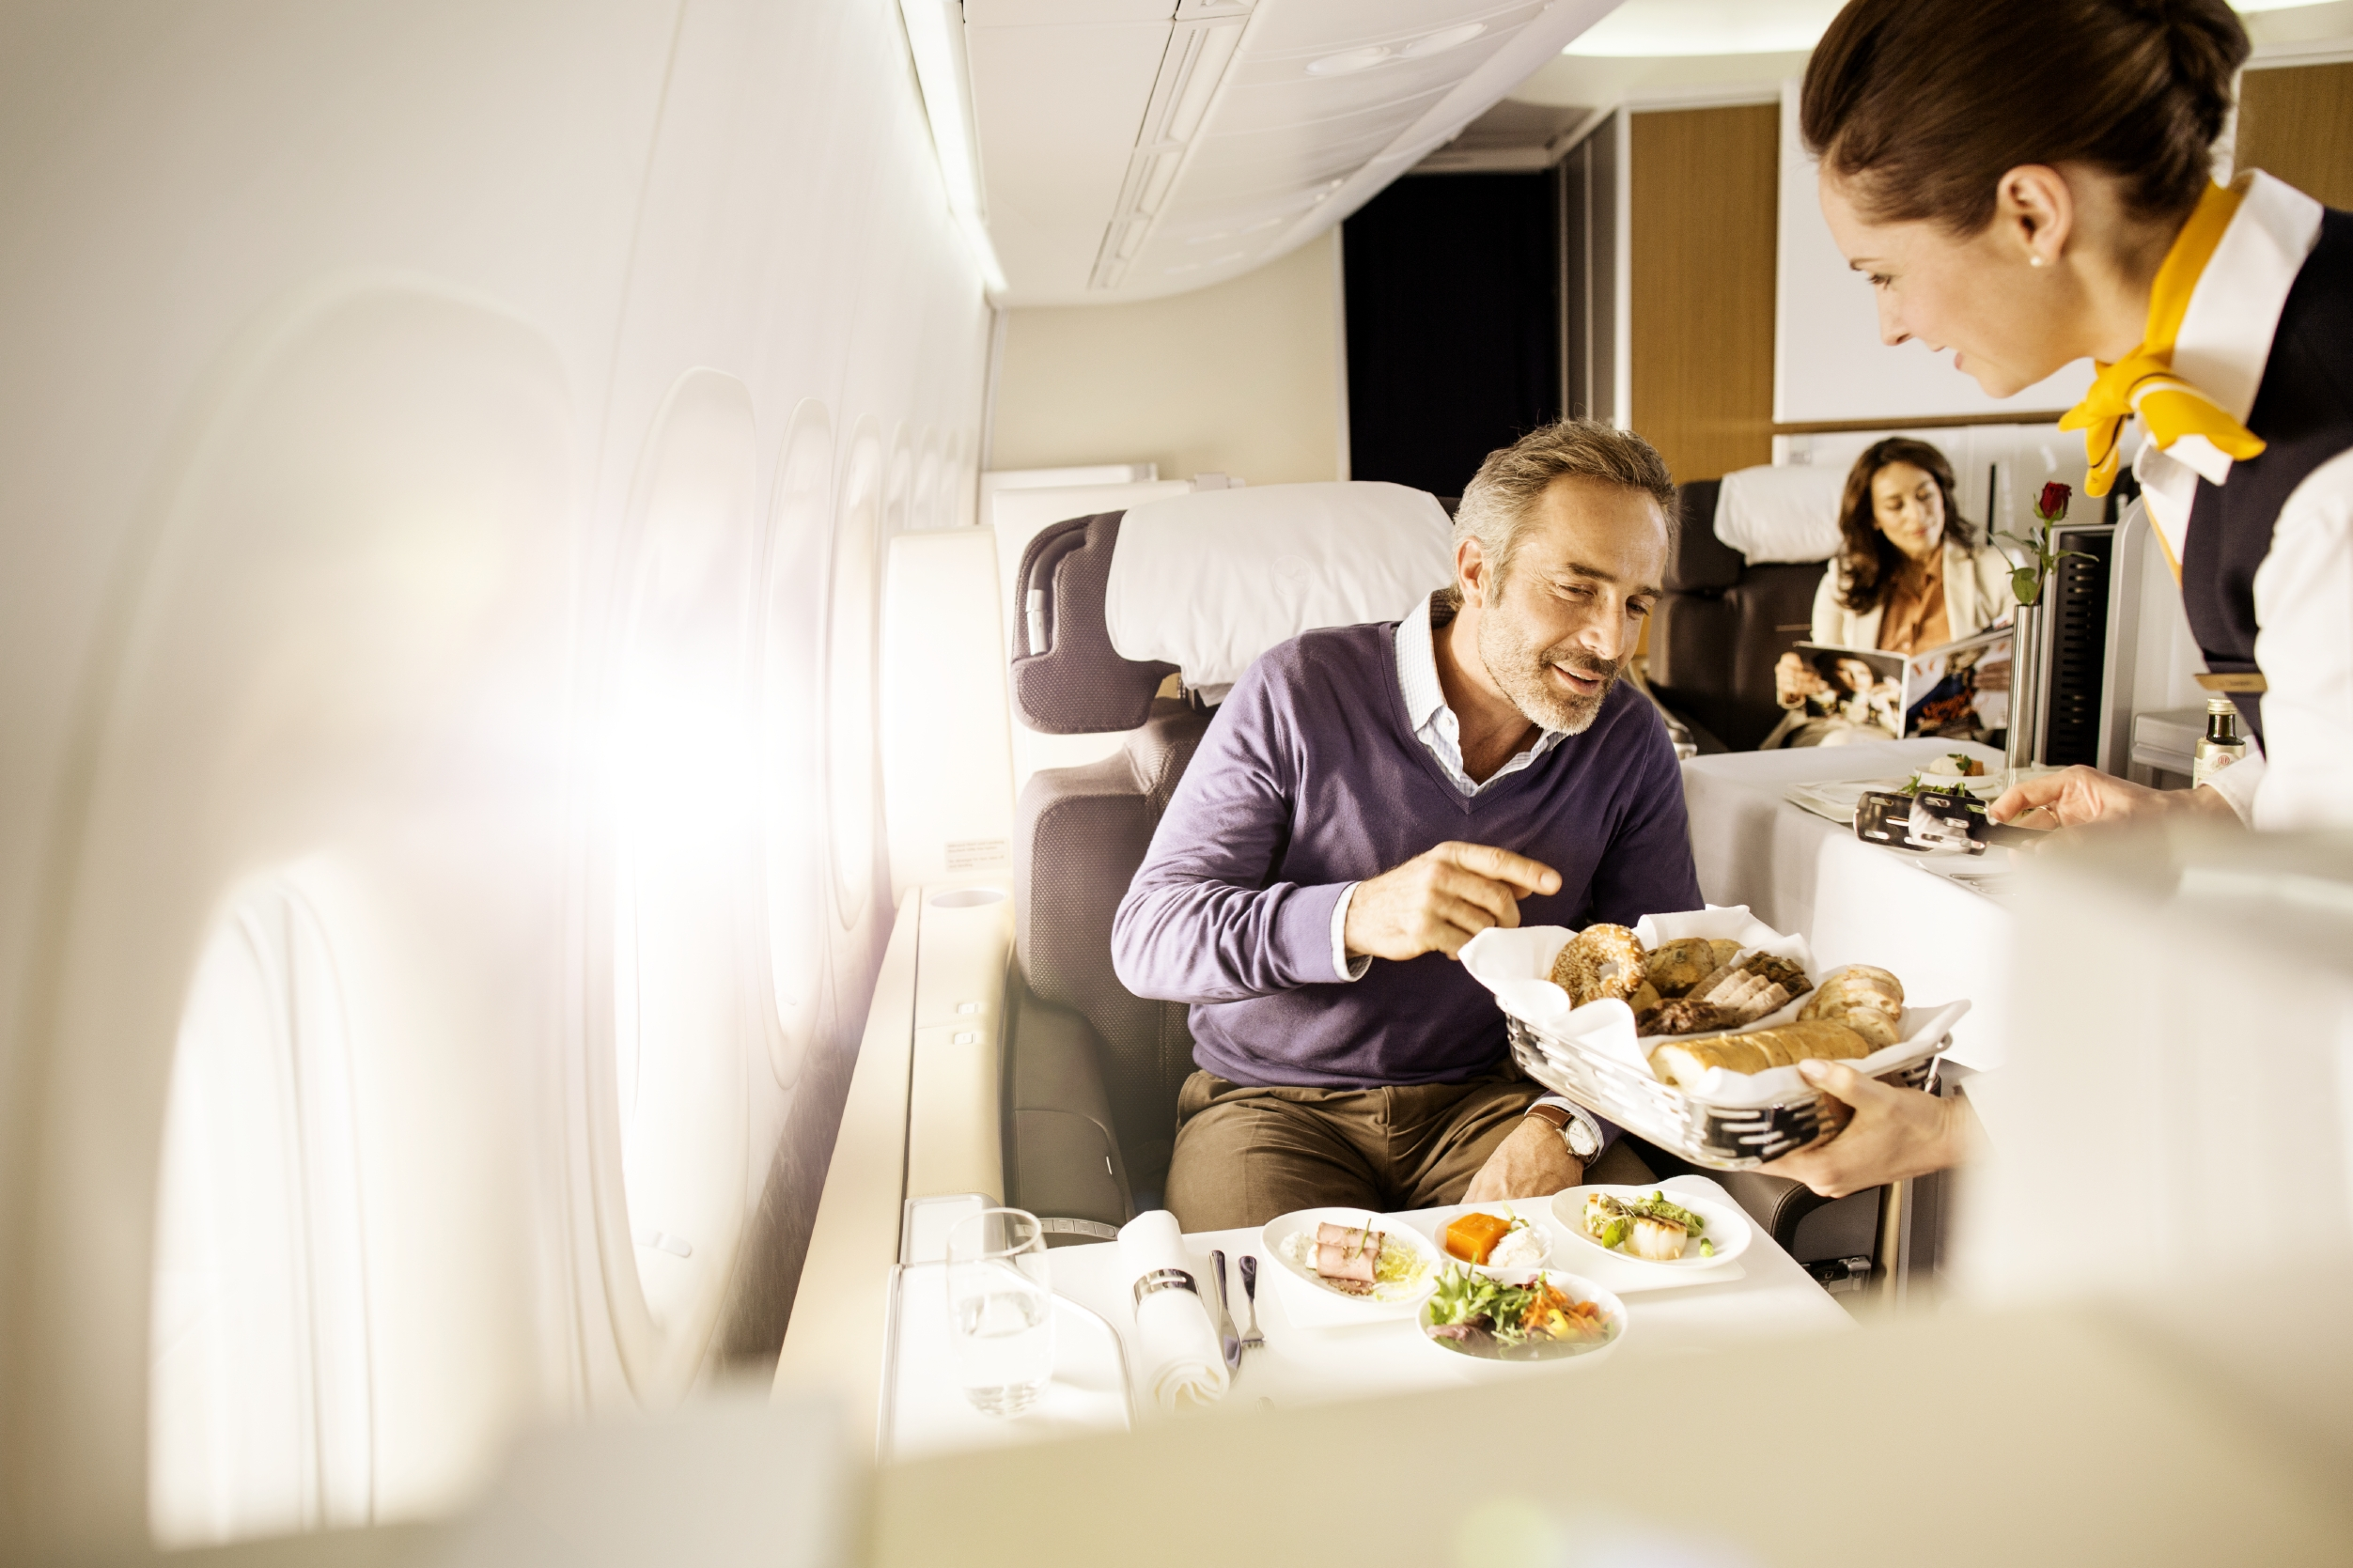 Offer: First class with Lufthansa or Swiss from £1934 return